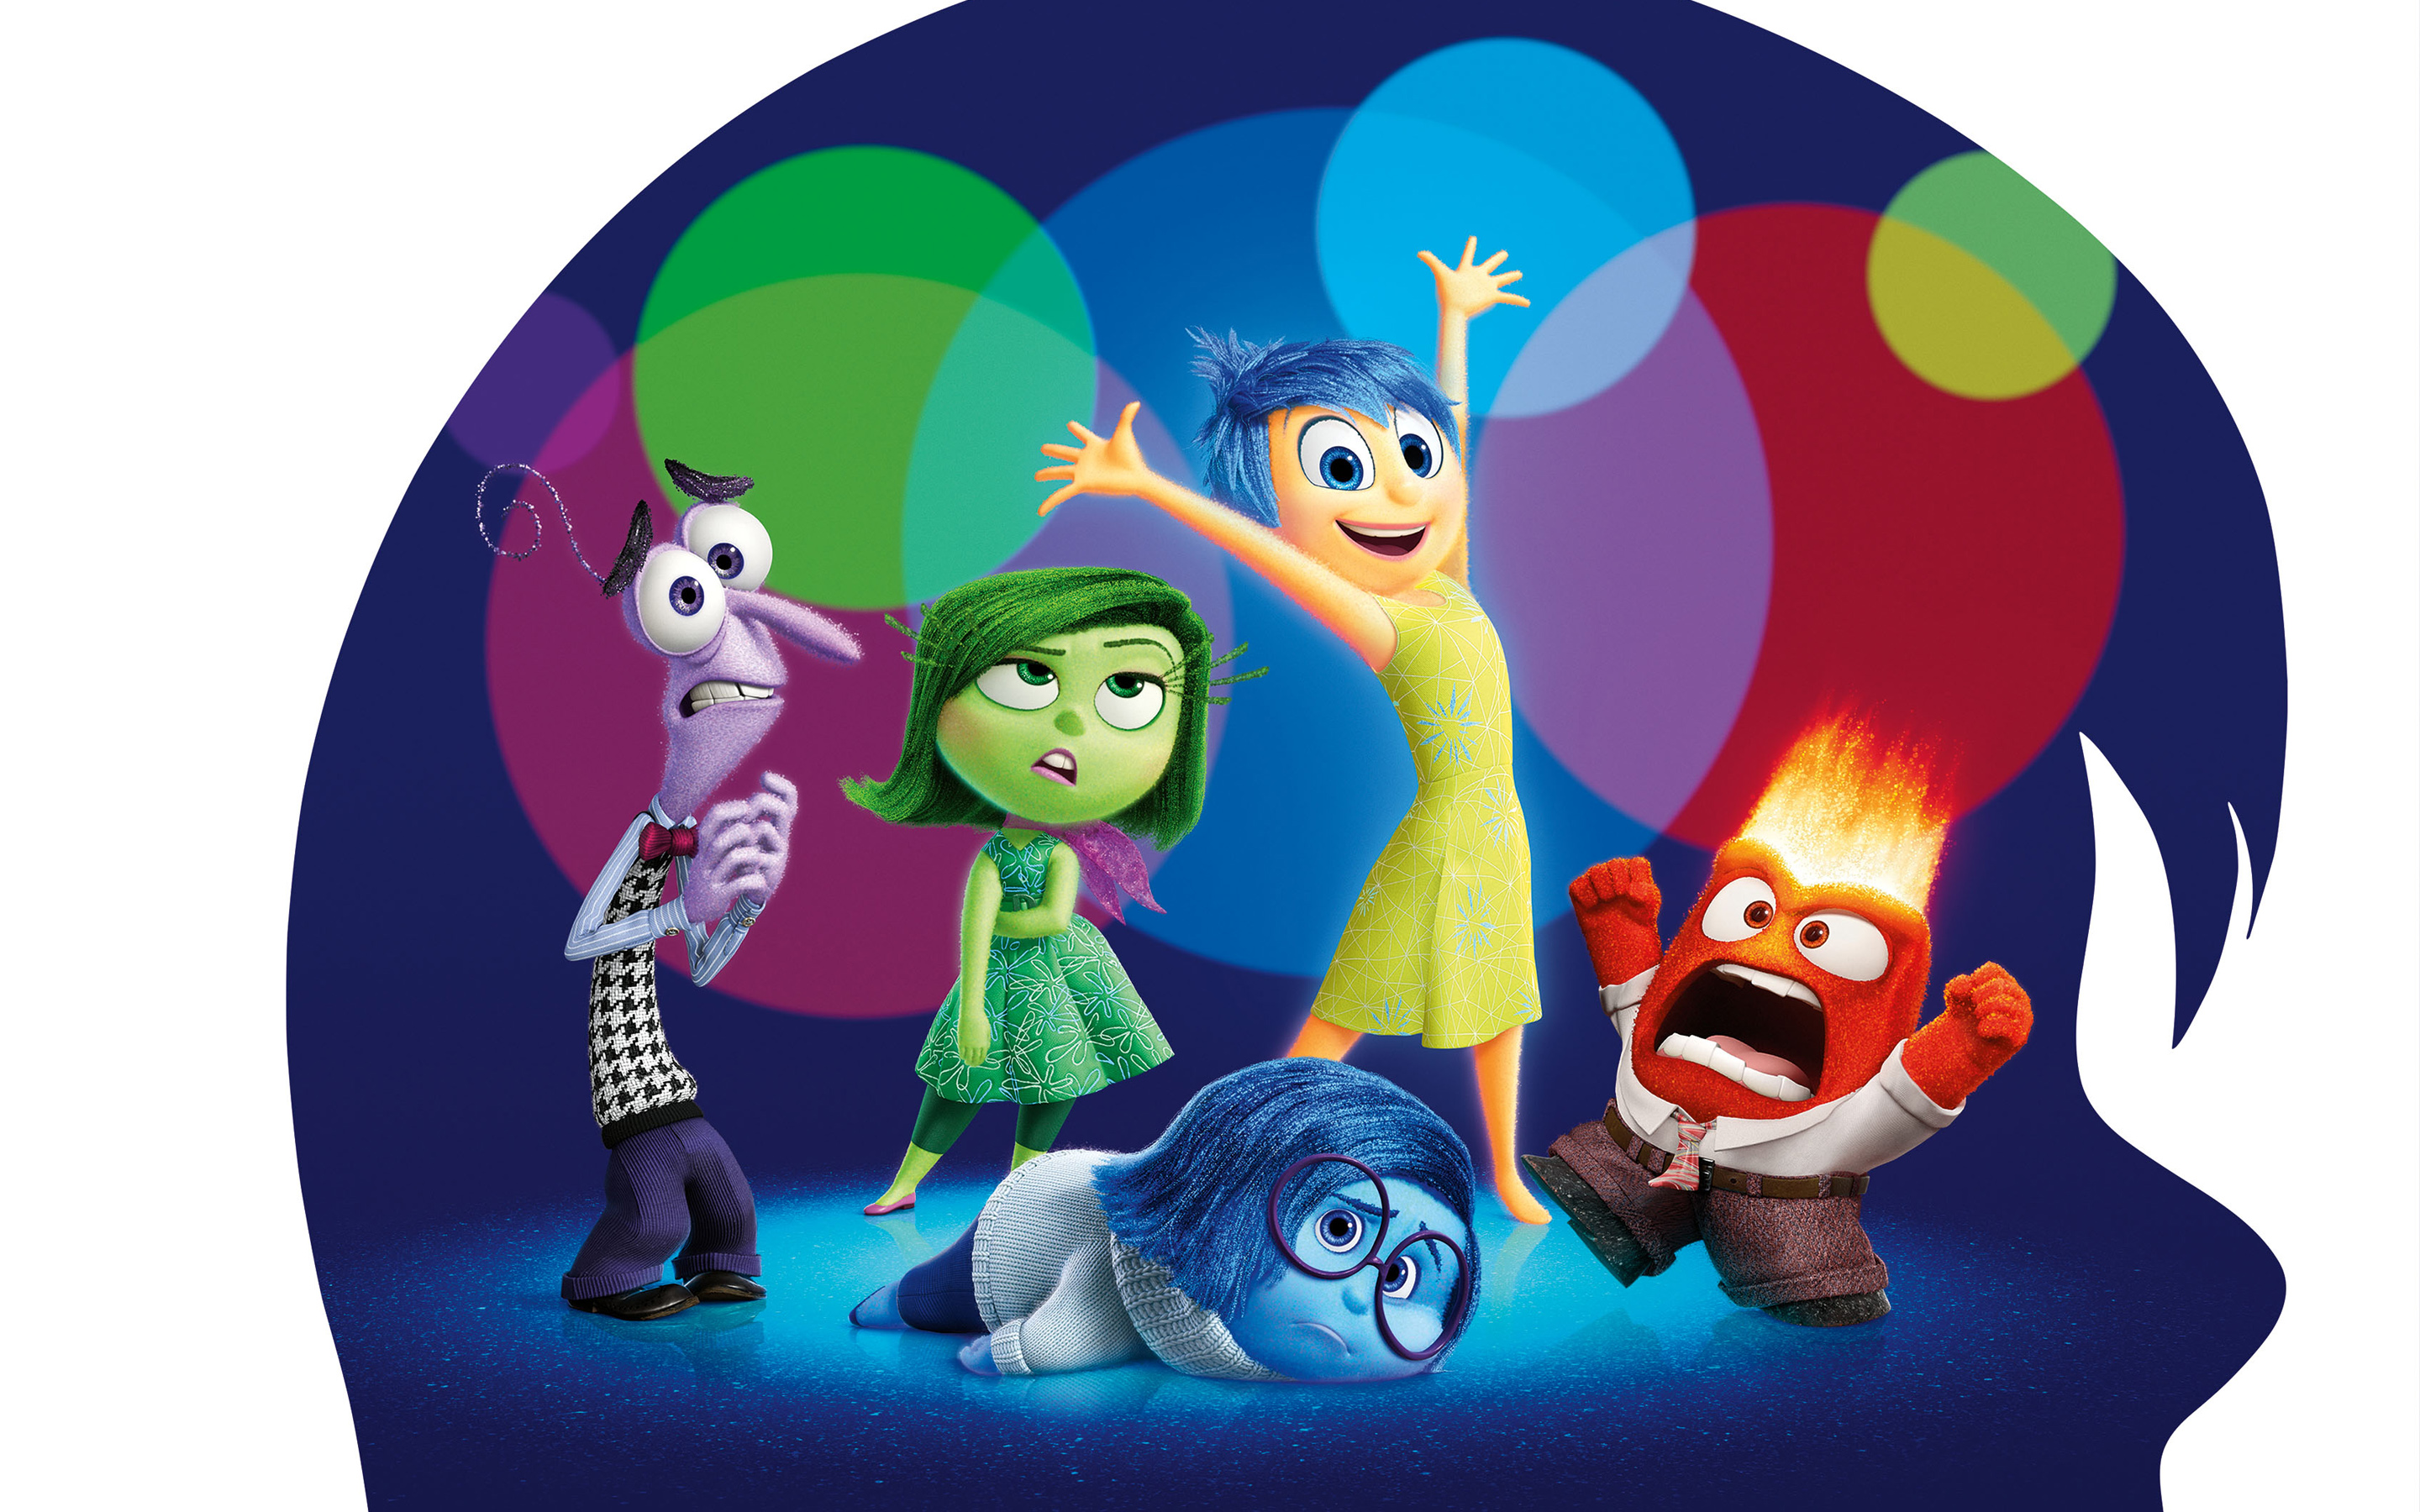 How Pixar's 'Inside Out' Gets One Thing Deeply Wrong | Center for ...